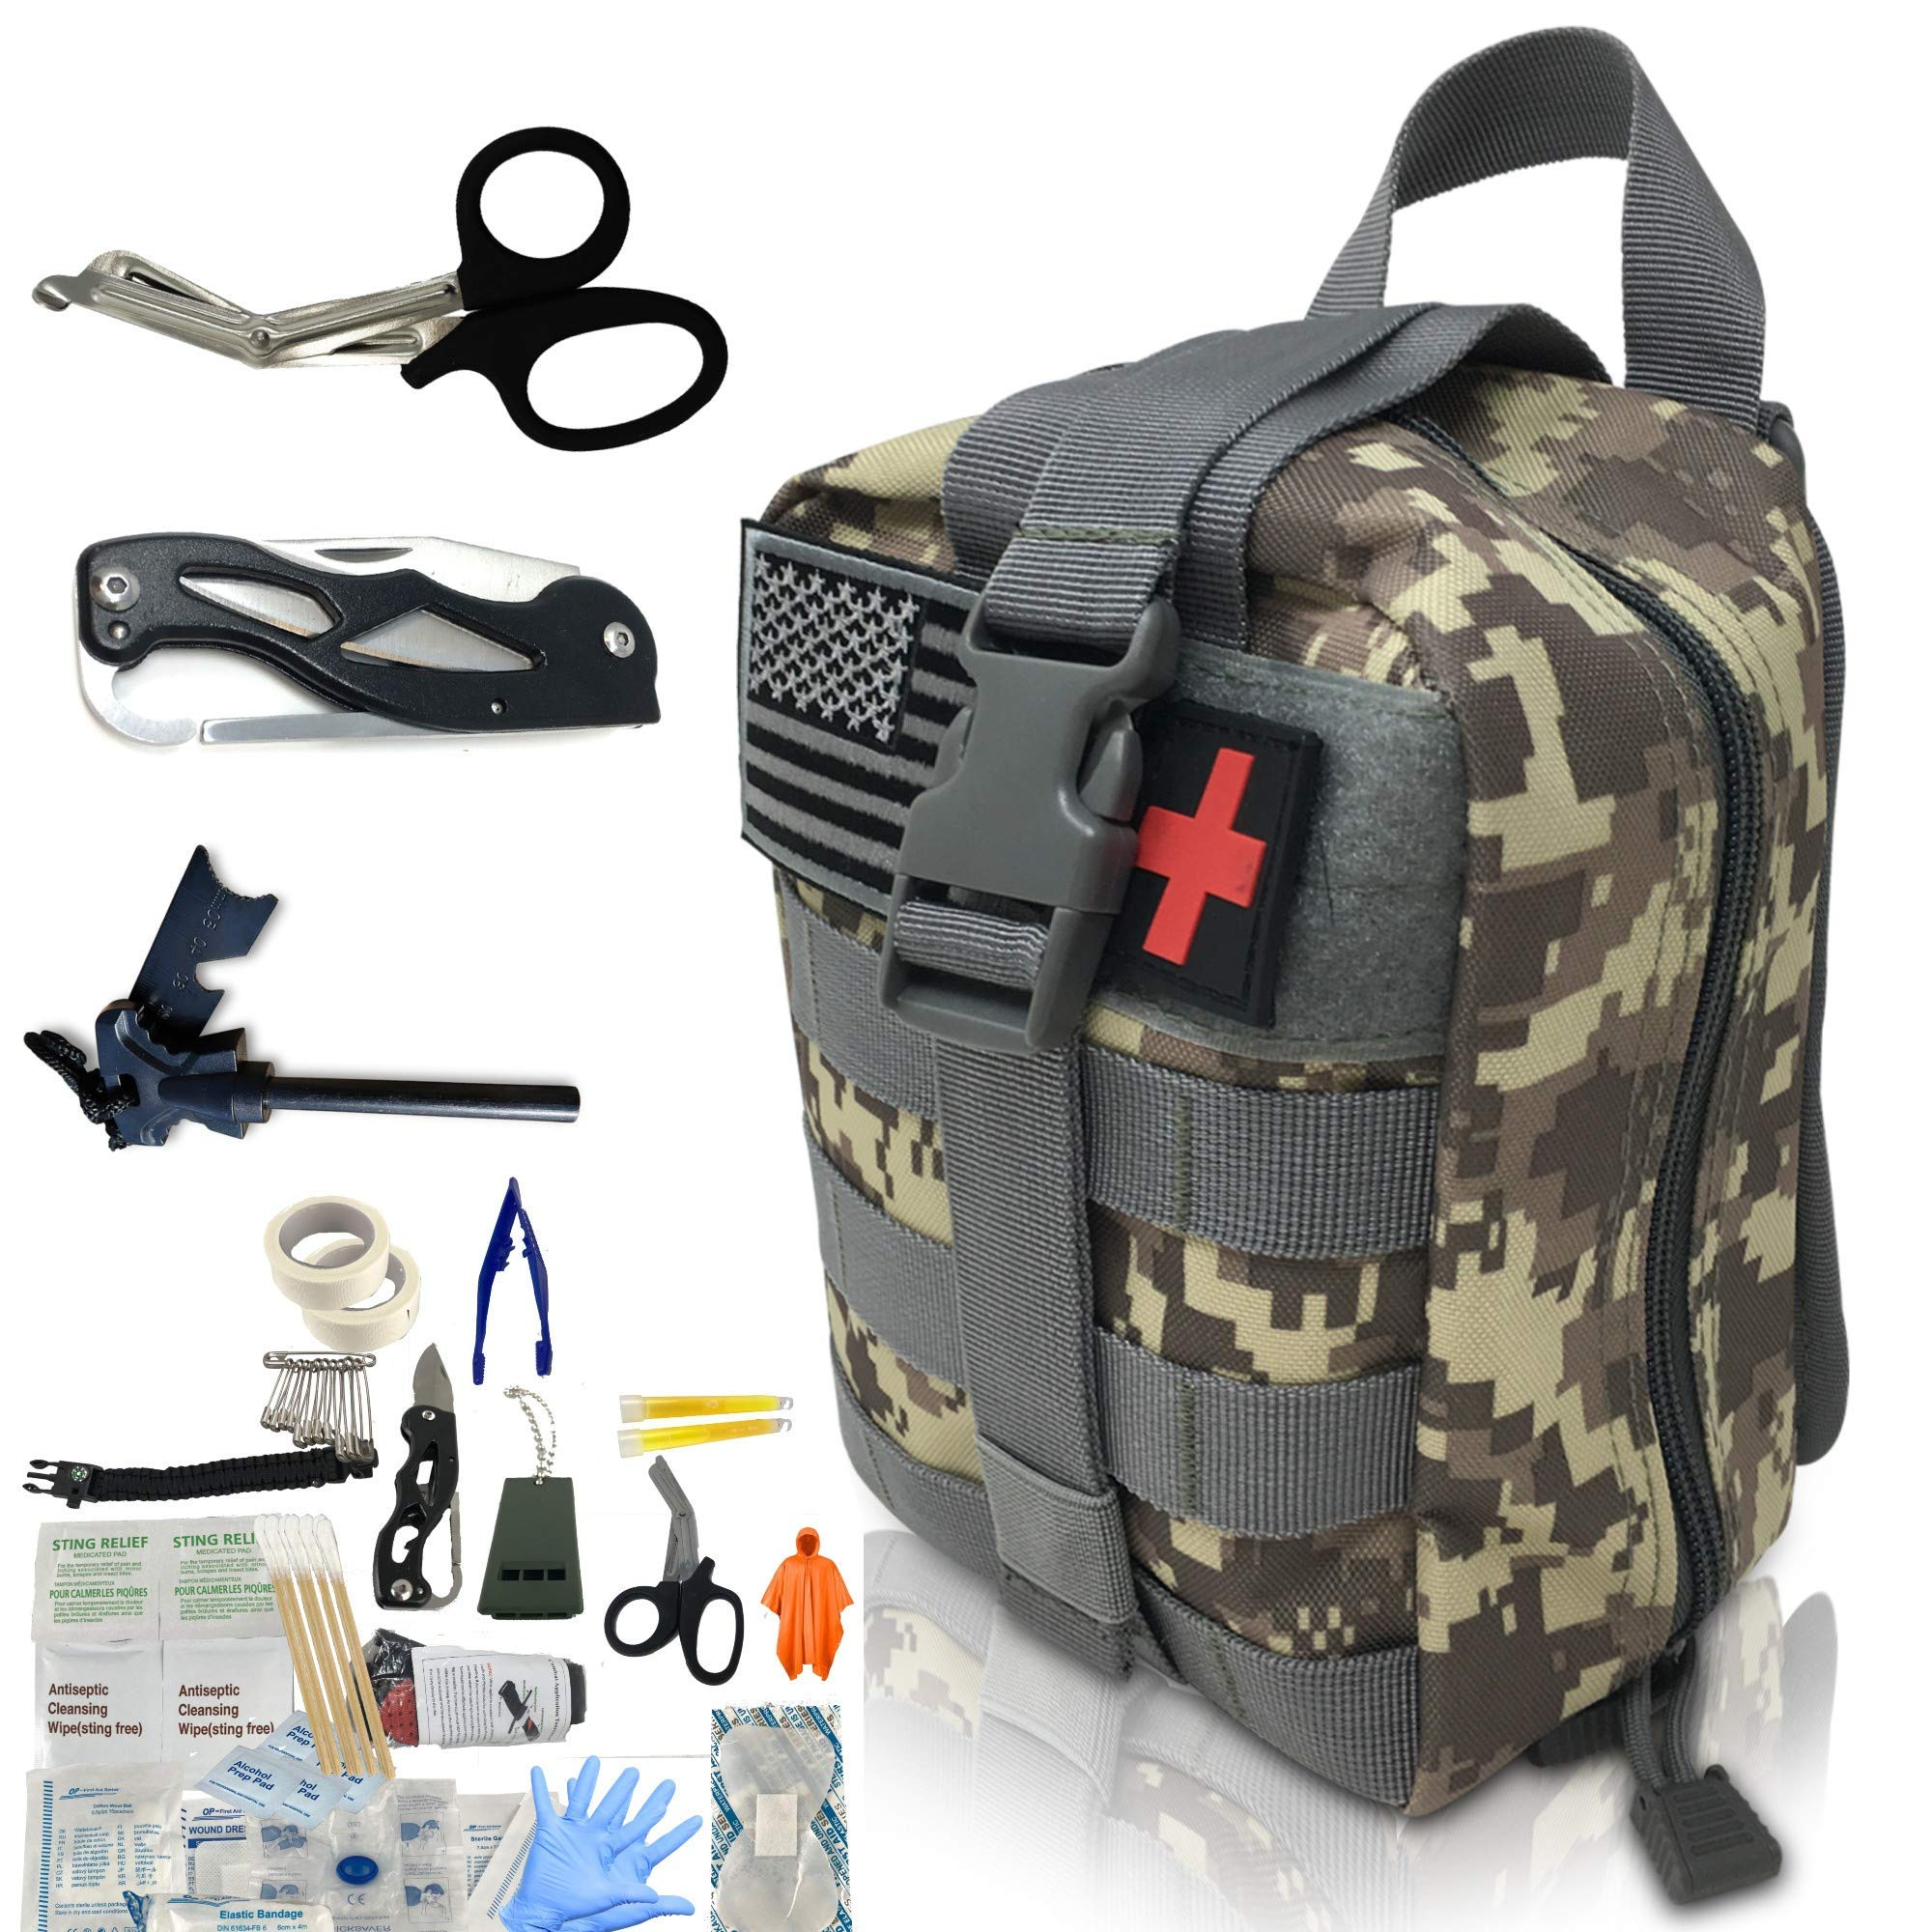 Emergency Trauma Tactical Kit - First Aid SurvivalKit - First Medical Portable Kit for Military Car Boat Home Office Hiking Camping Hunting Travel Adventures Earthquake - Survival Gear Kit Medical by Scuddles